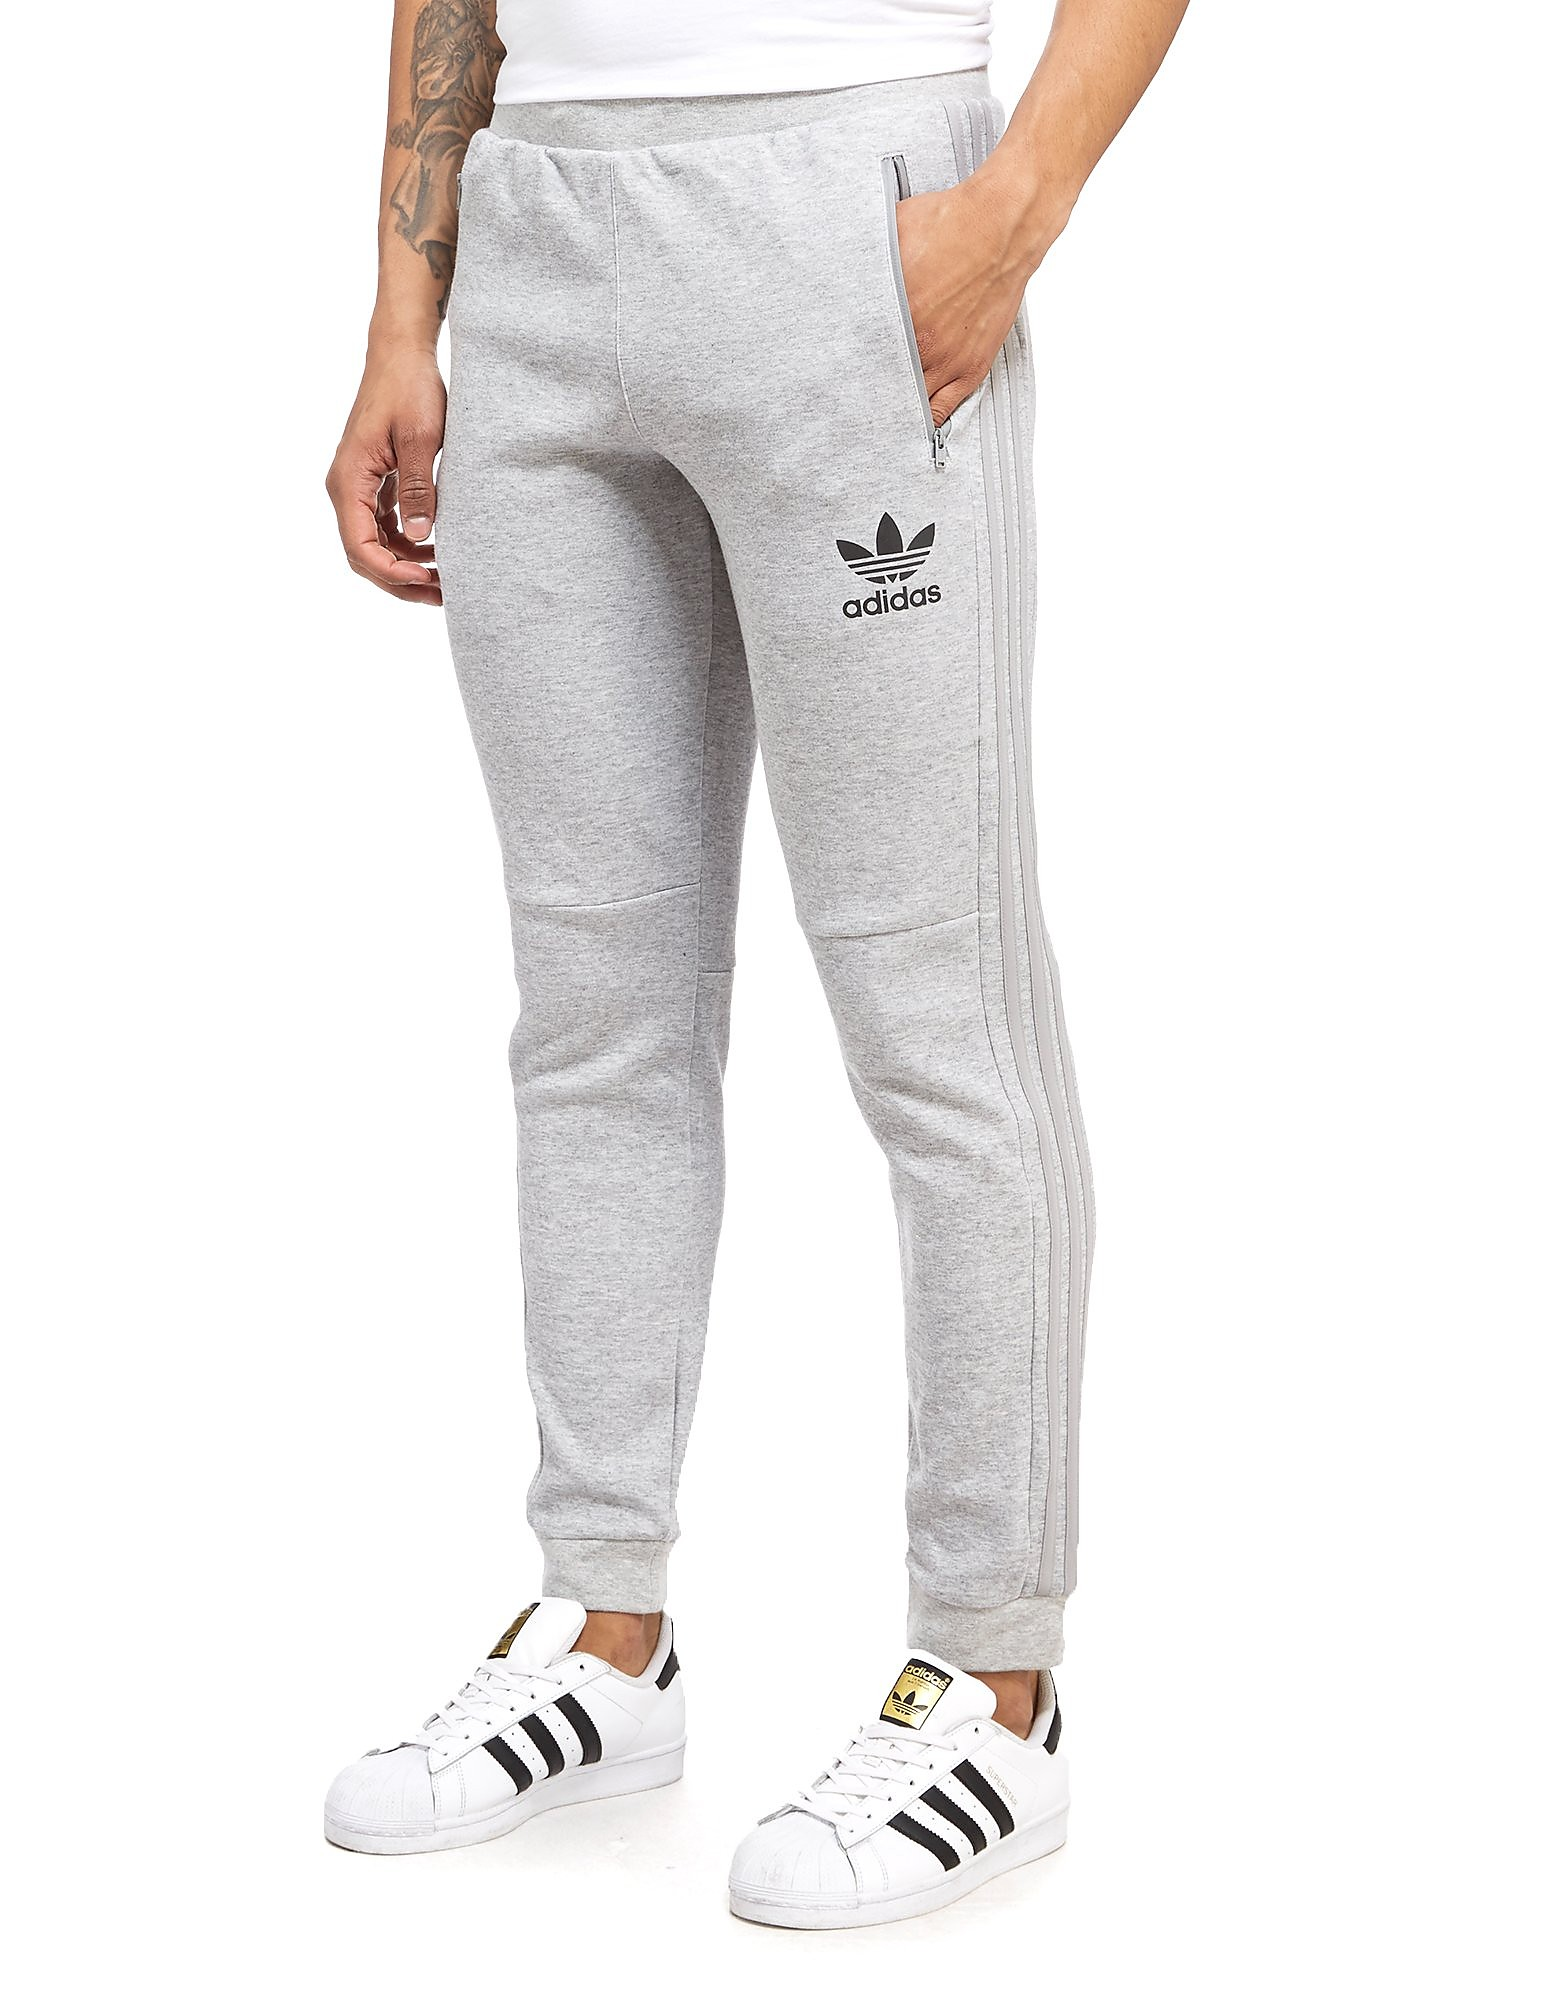 adidas Originals Street Run Fleece Pants